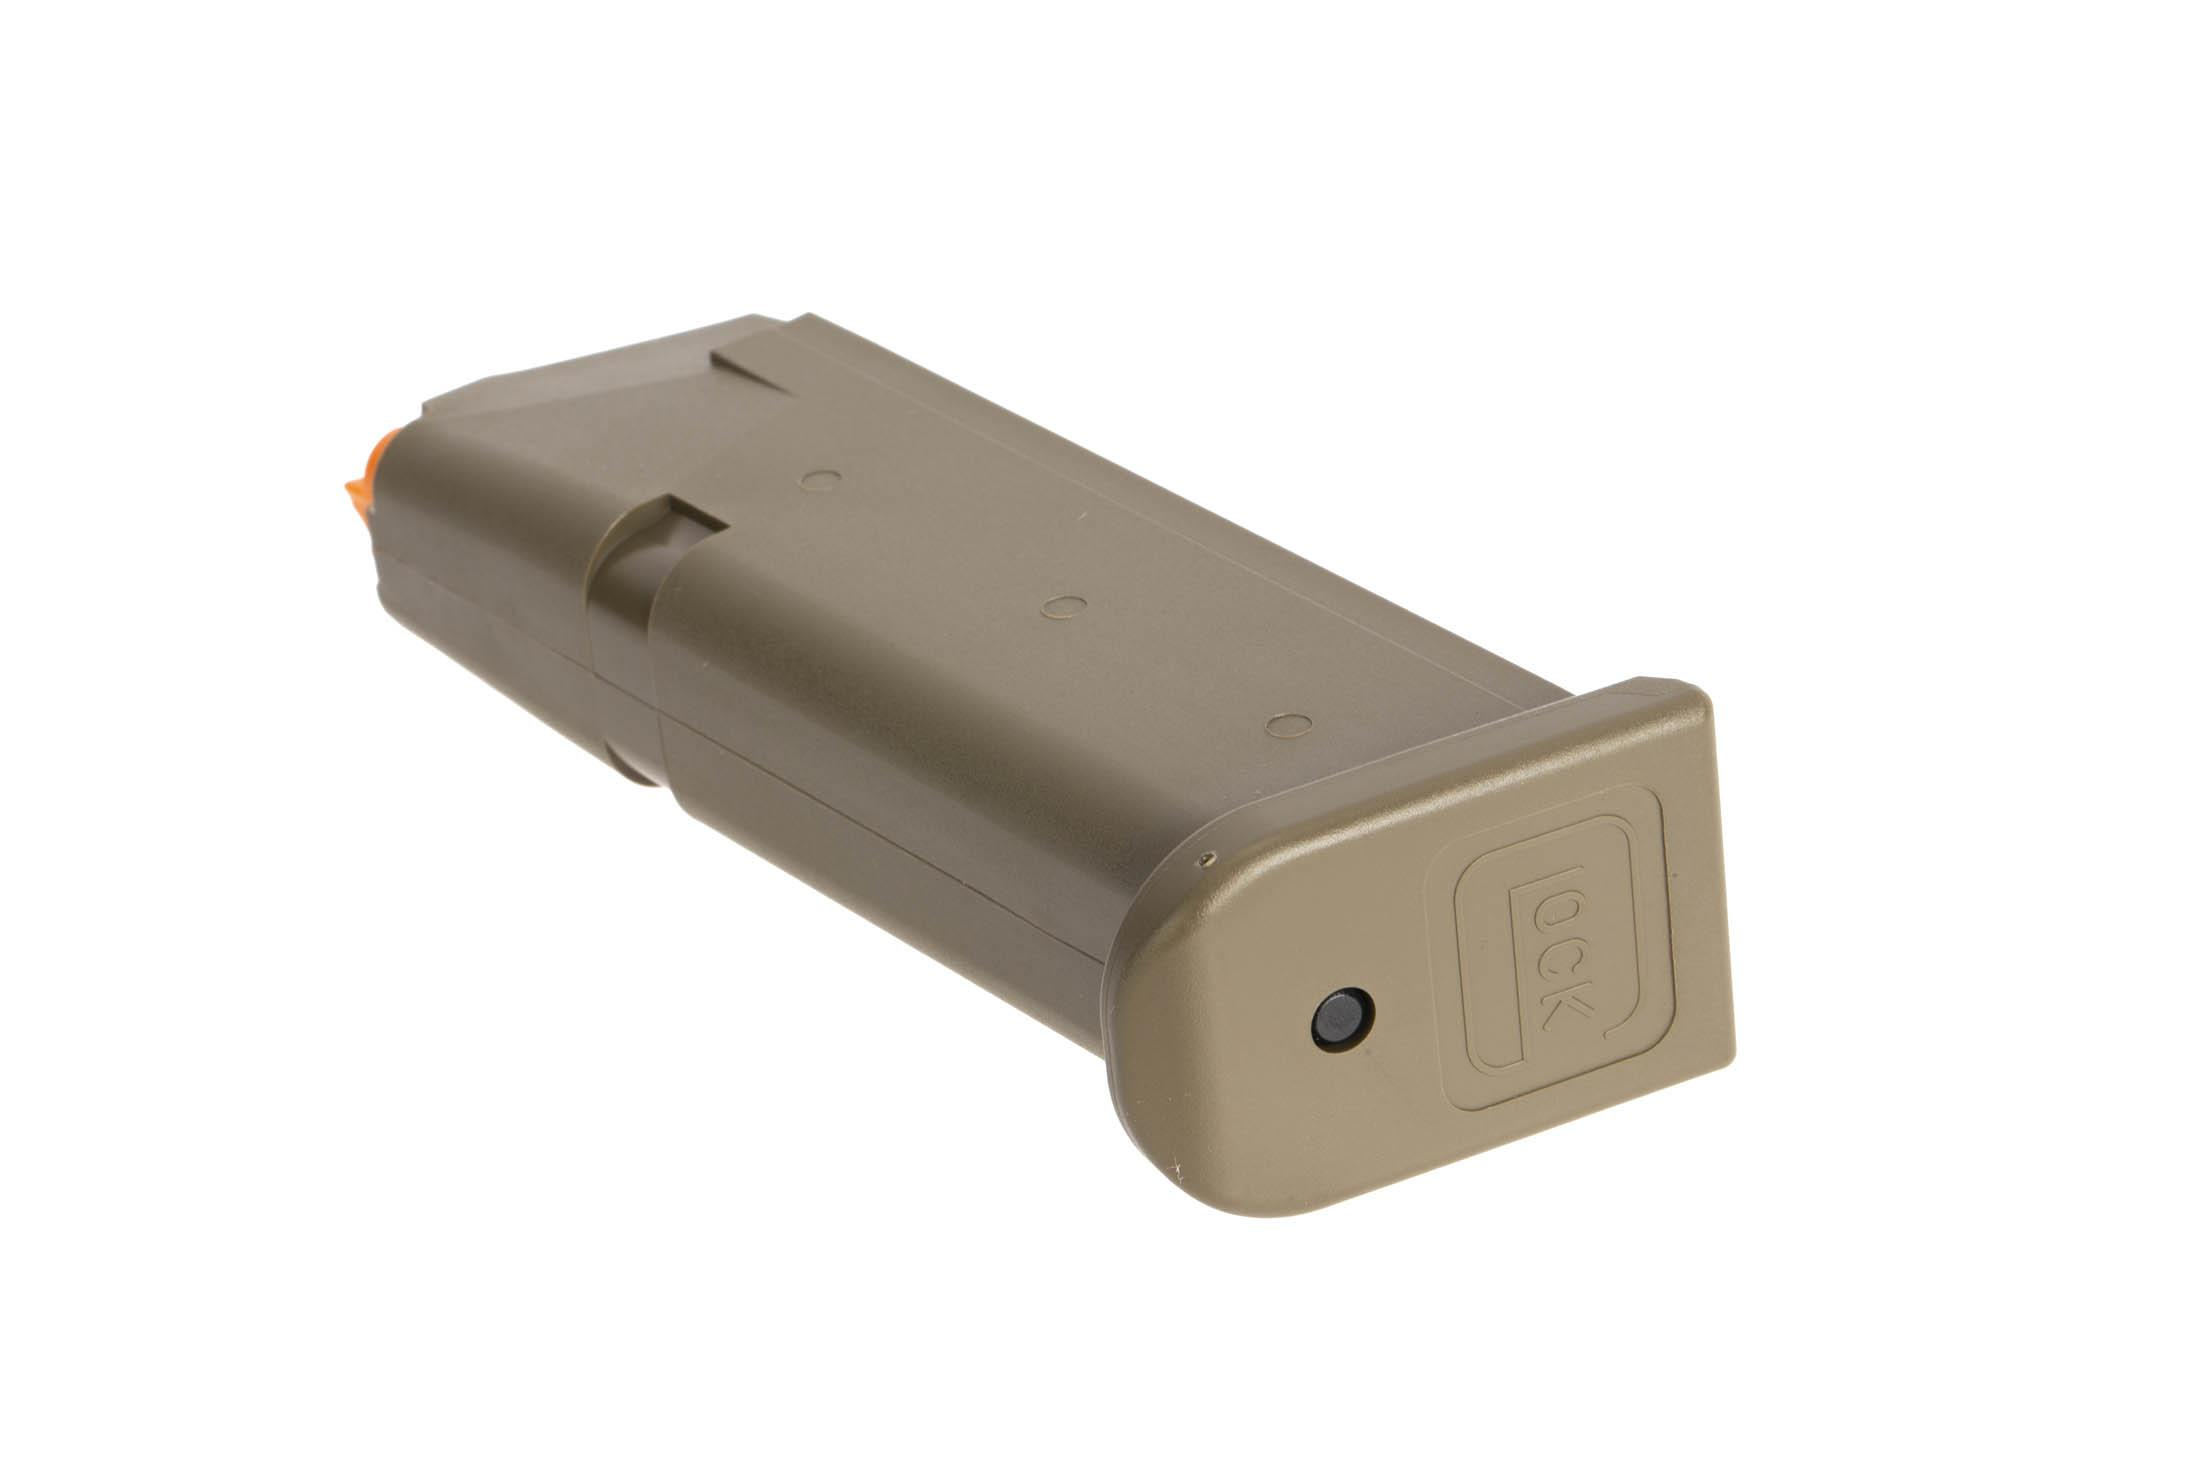 Glock standard capacity OEM 9mm Gen 5 G19 pistol magazine with flared base plate and olive drab green finish